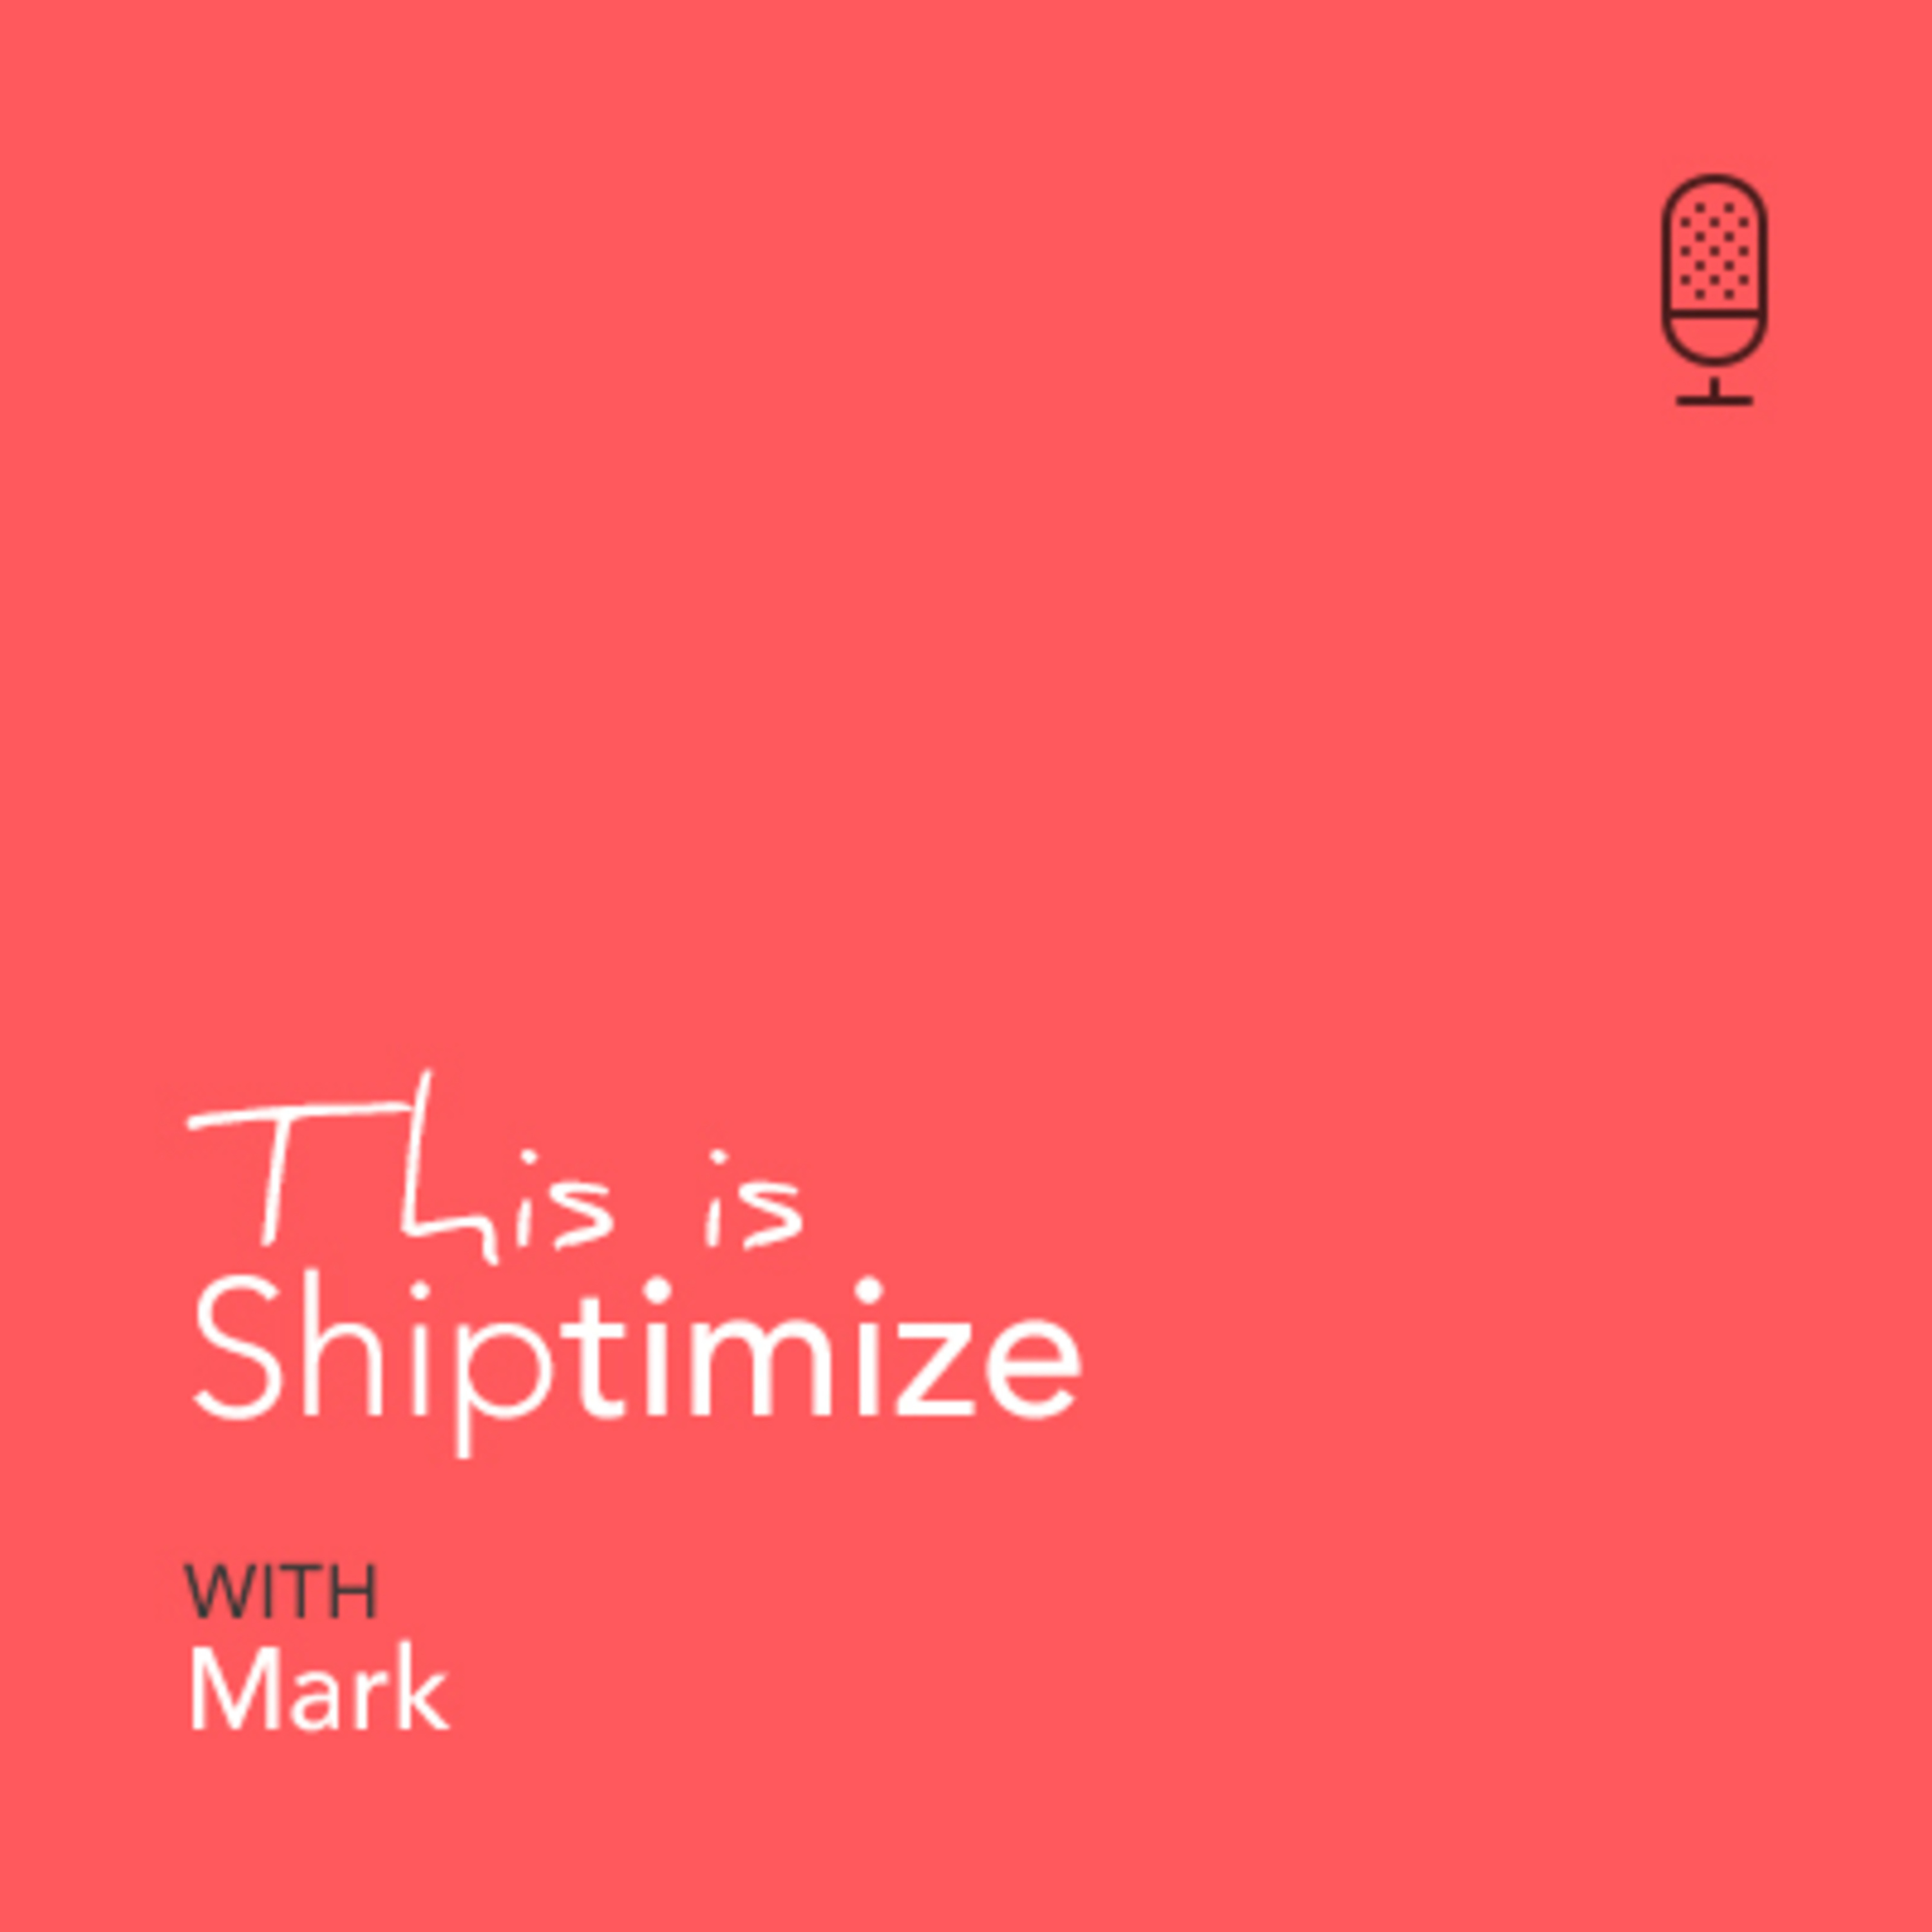 This is Shiptimize - Meet Mark!